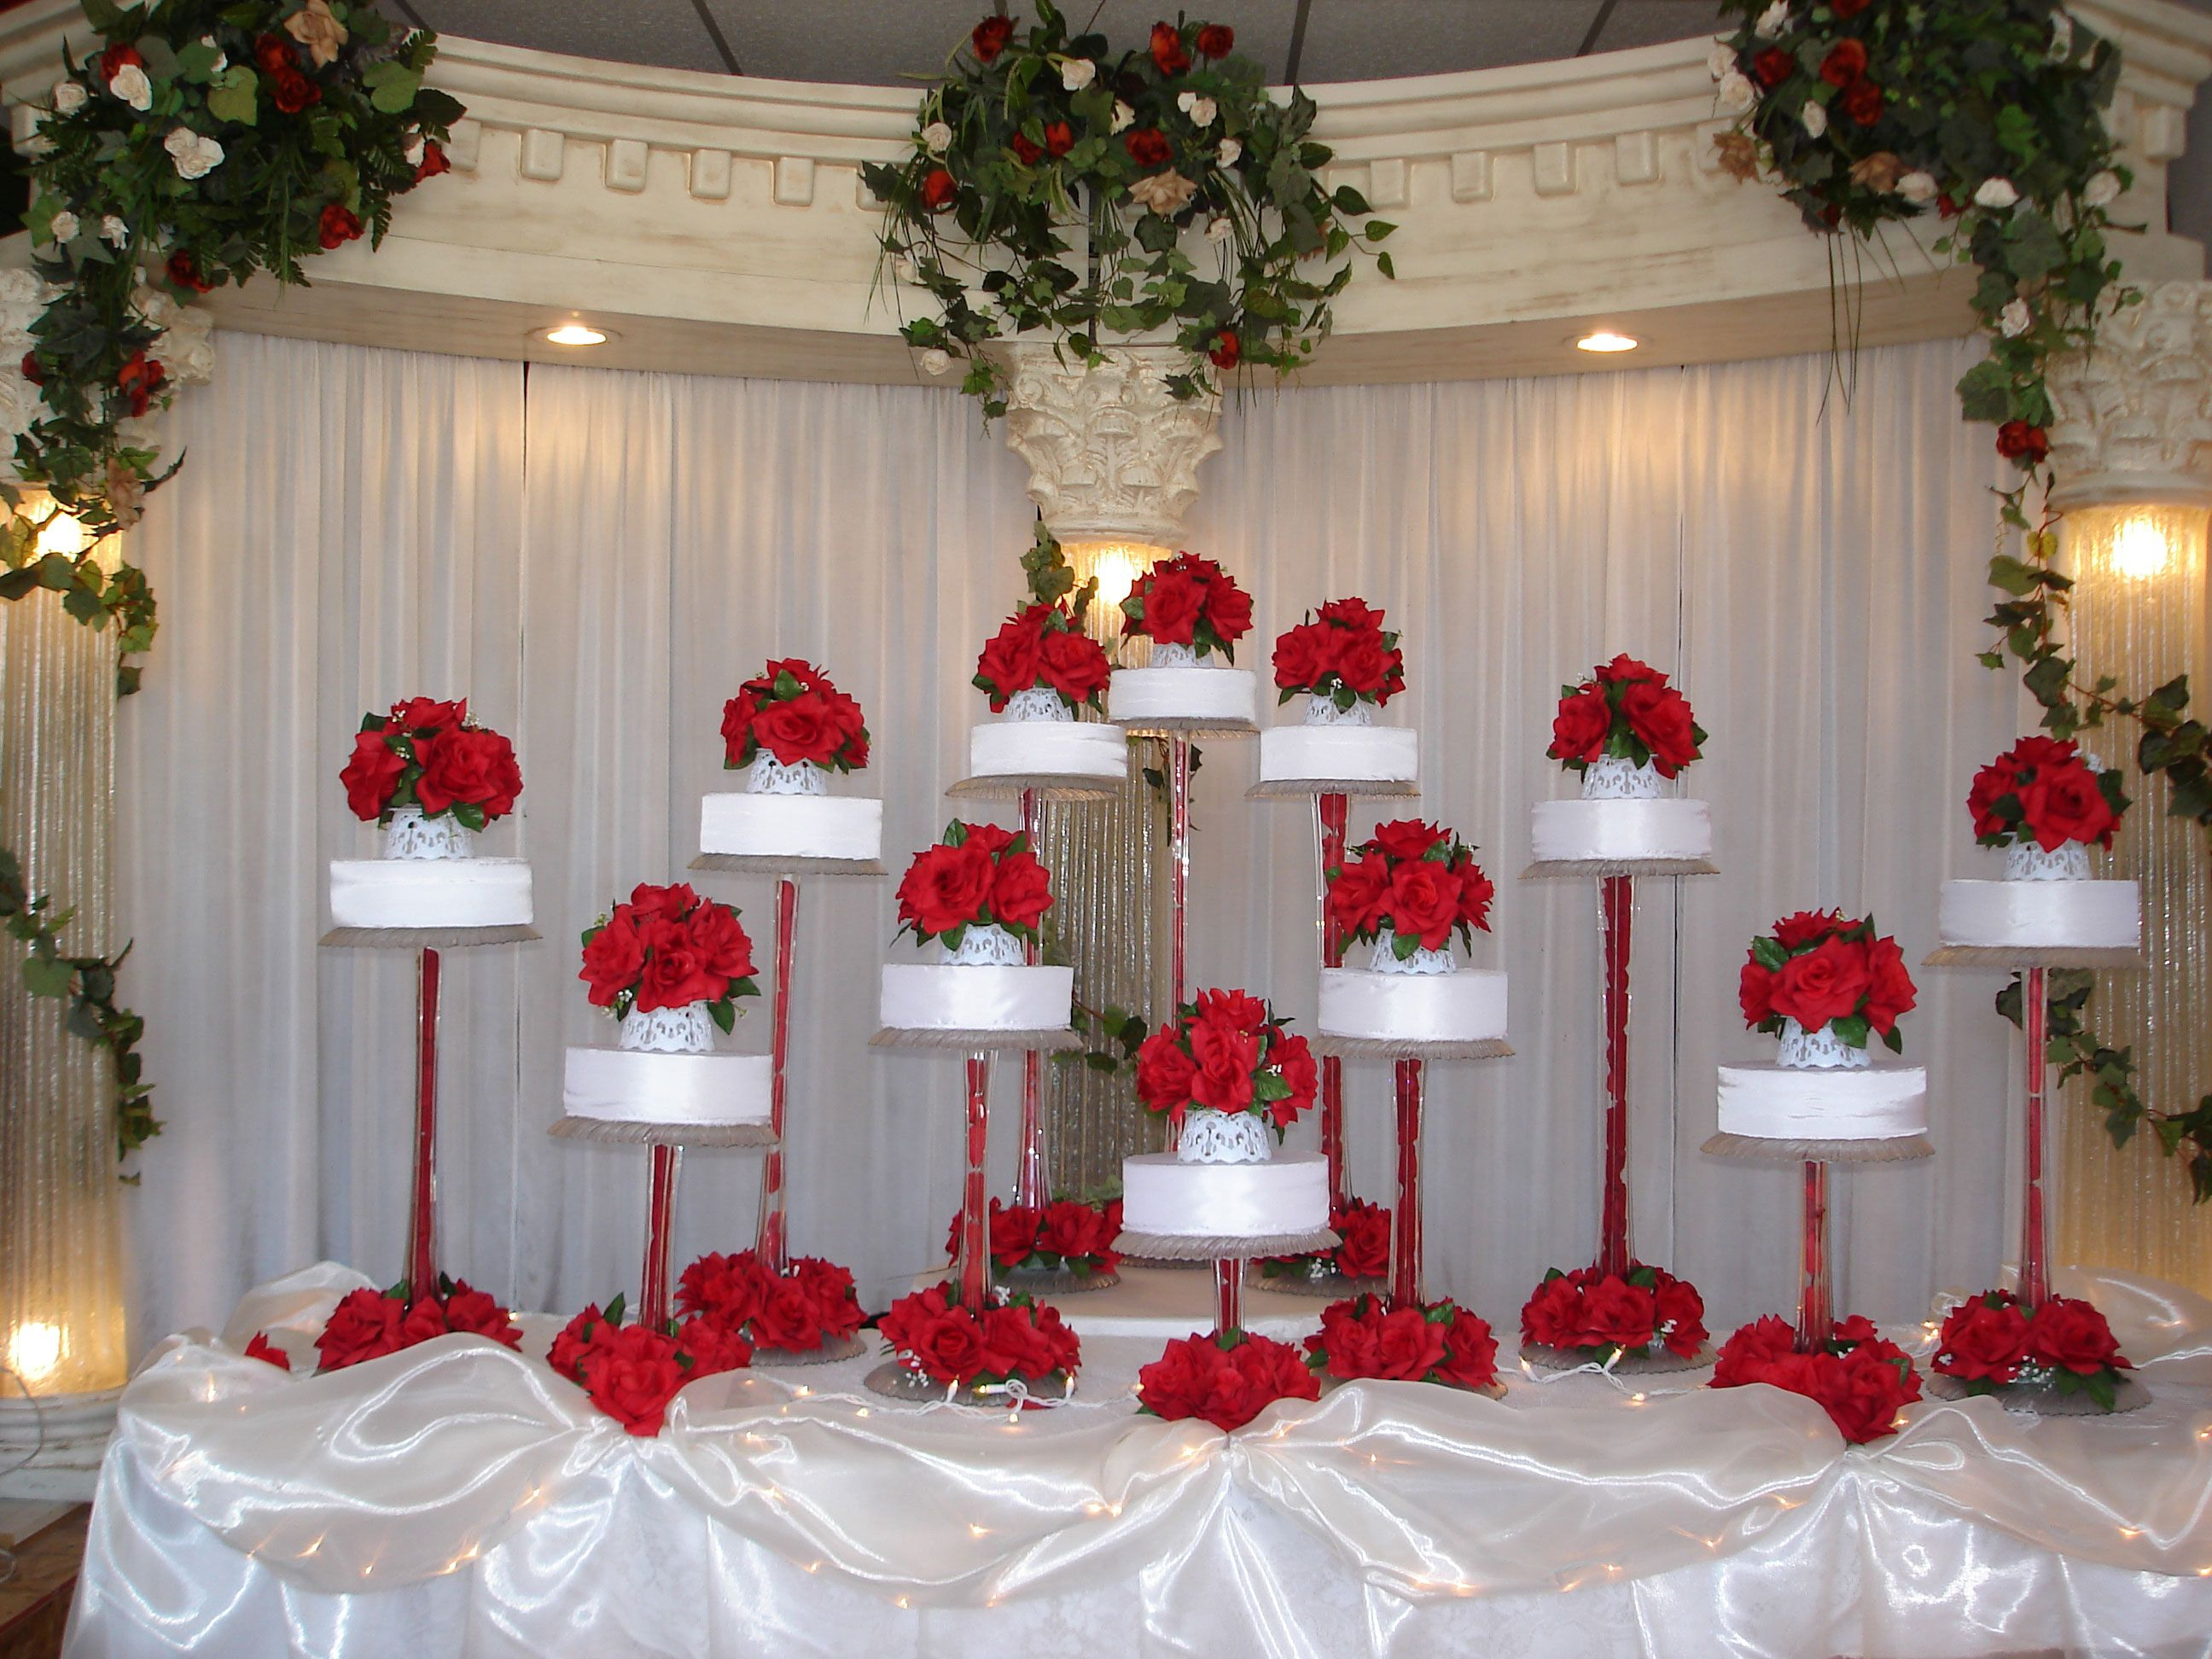 Salon decoraciones decoraciones bodas pictures the - Decoraciones de bodas ...